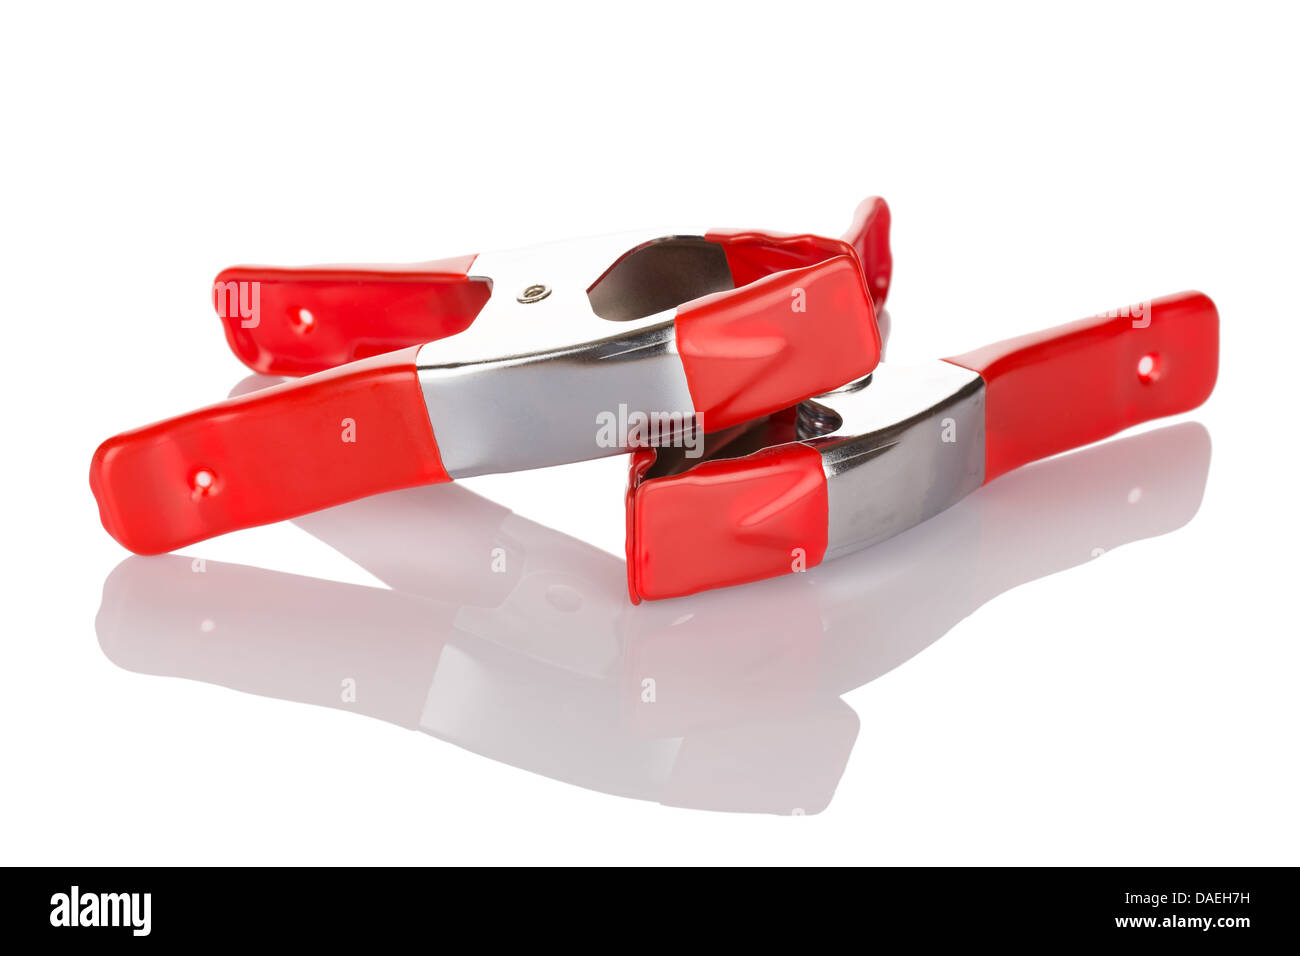 Red pliers. Manual tool. Isolated on white background close up. - Stock Image